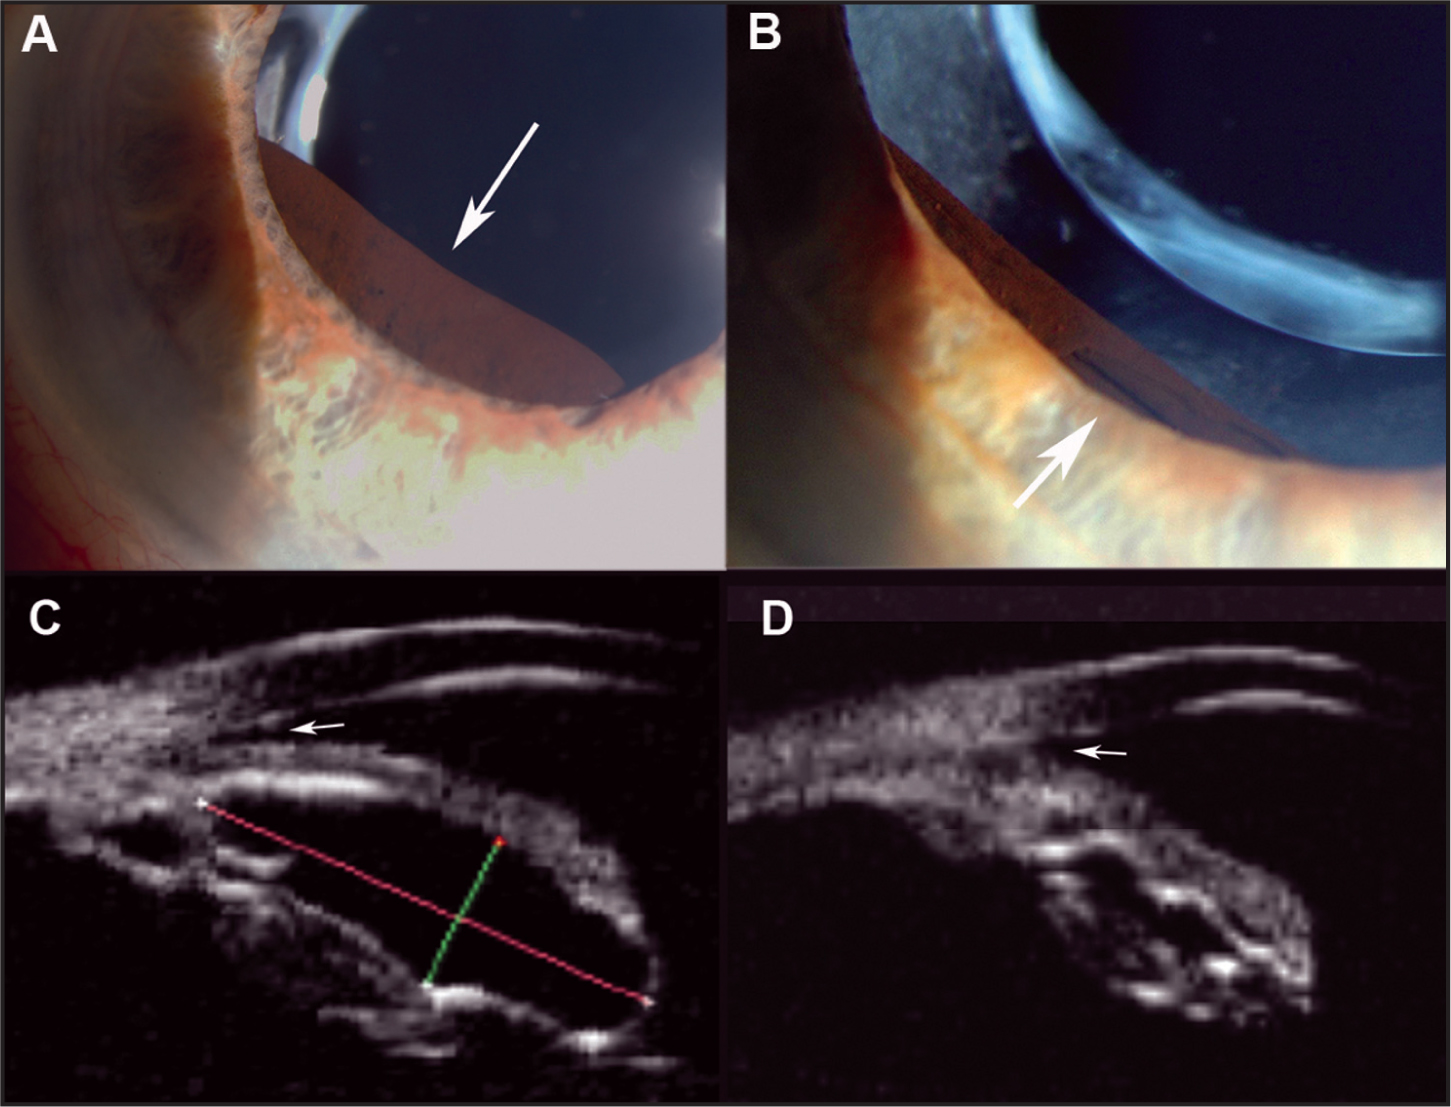 Case 1. Slit-Lamp Photography of Iris Pigment Epithelial Cyst Shows (A) Extension of the Cyst Beyond the Pupillary Border (arrow) and (B) a Deflated Cyst with Minimal Extension Beyond the Dilated Pupillary Border After Laser Cystotomy. The Image was Magnified to Demonstrate the Site of Cystotomy (arrow). (C) High-Frequency (35-MHz) Ultrasound in Longitudinal Section Before Laser Treatment Demonstrates the Large Cyst with Relative Appositional Angle Closure (arrow). (D) Markedly Reduced Intra-Luminal Diameter of the Cyst with Resolution of Angle Closure (arrow) After Laser Treatment.